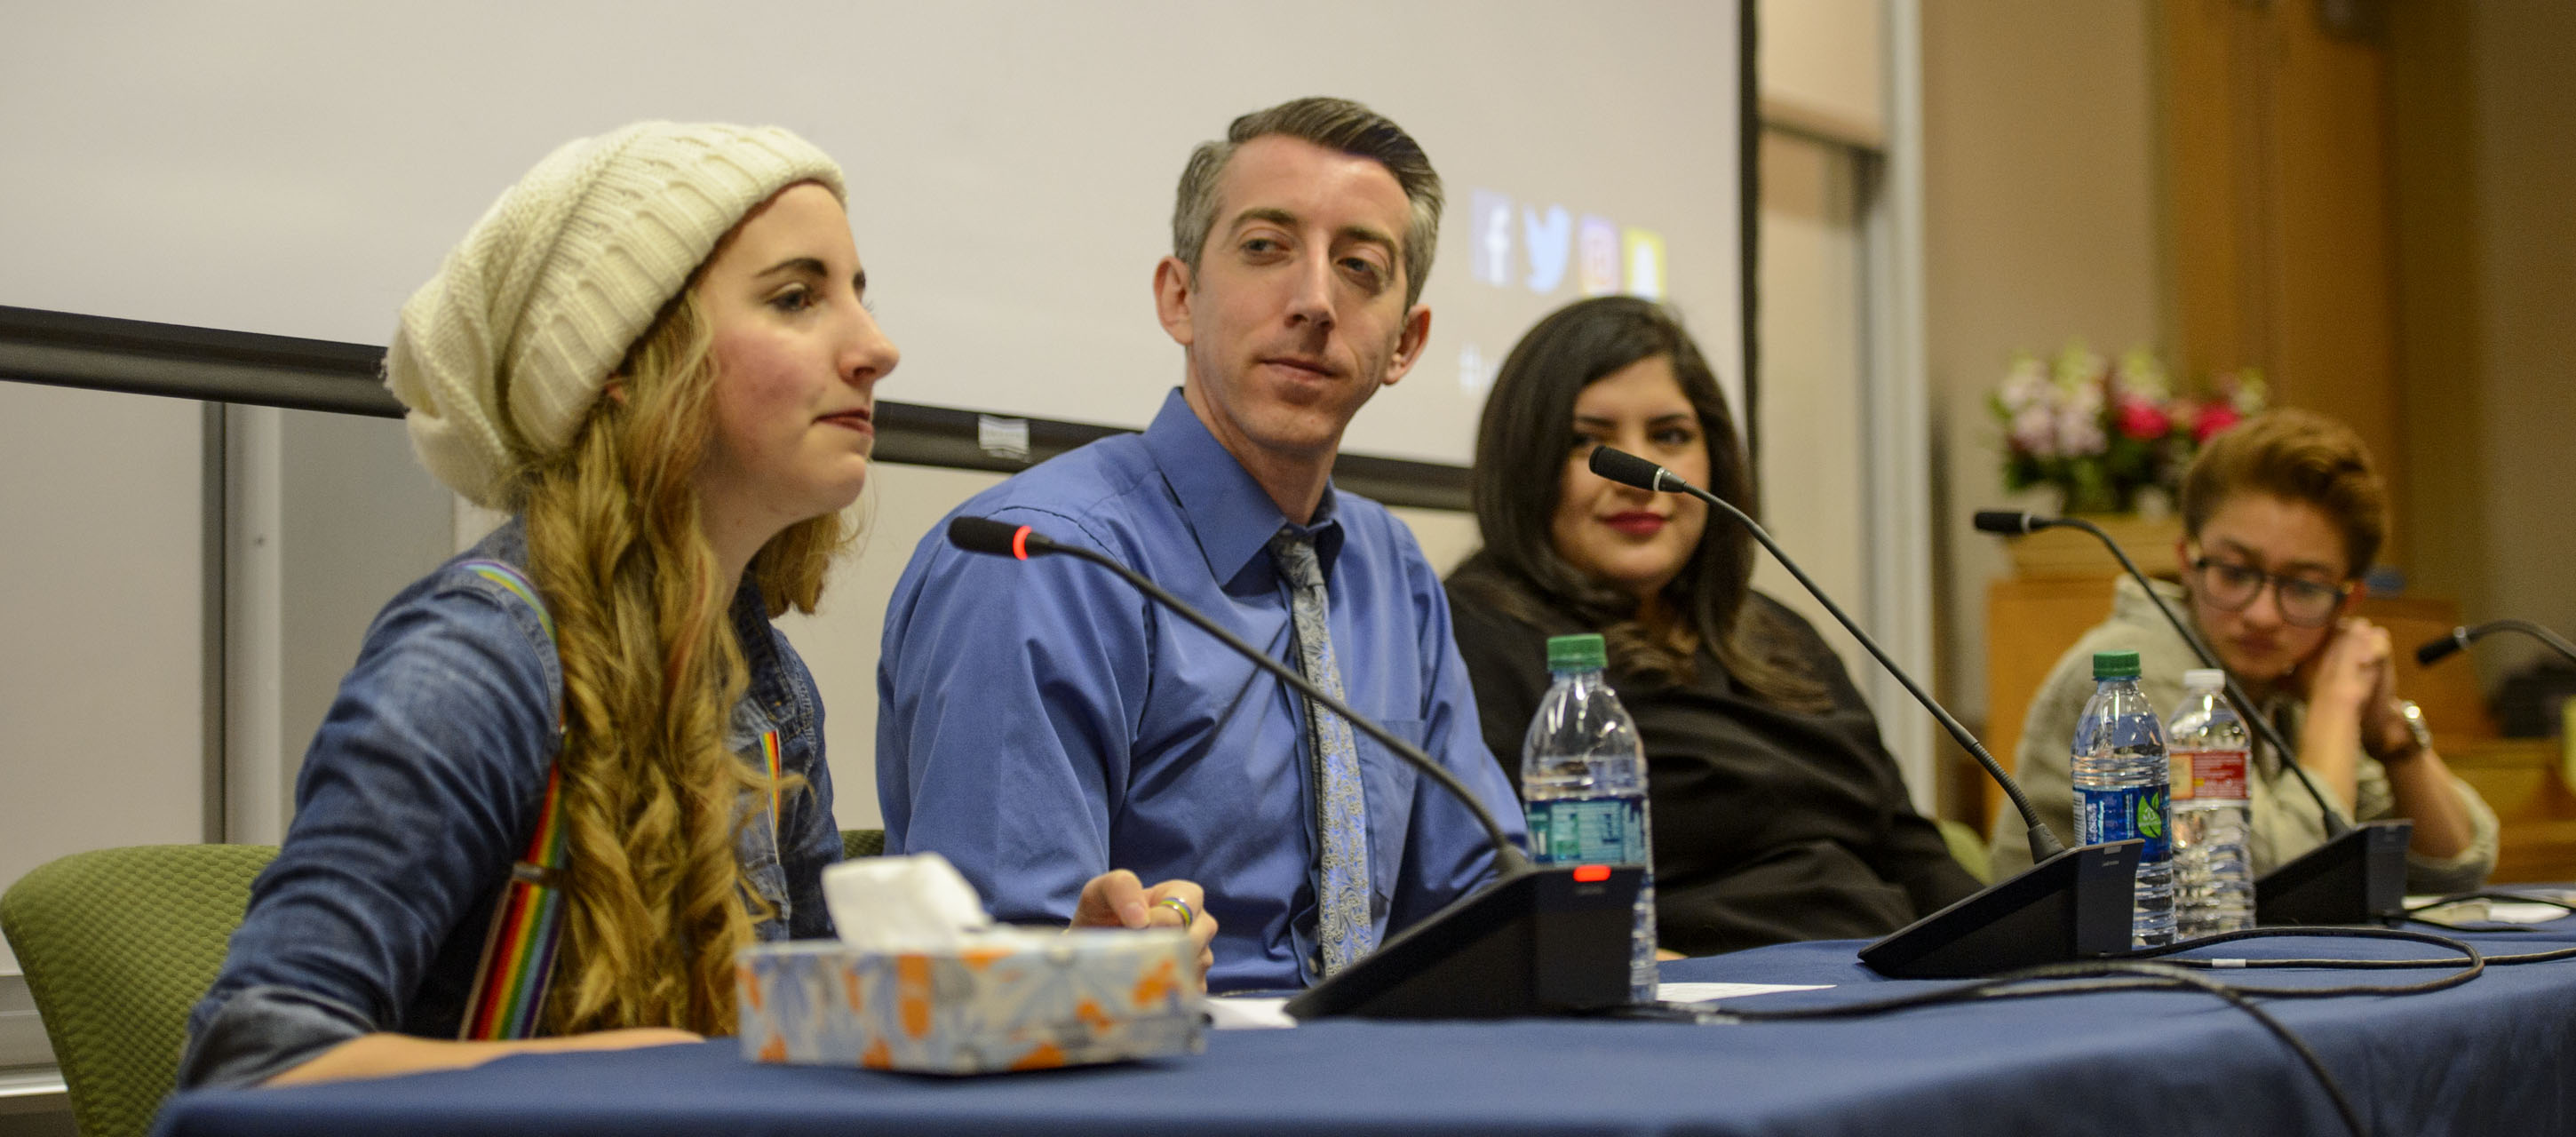 (Steve Griffin  |  The Salt Lake Tribune)  Panel members Kaitlynn, Ben, Sarah and Gabriel speak during a LGBTQ and SSA student forum at BYU in Provo, Thursday, March 15, 2018.